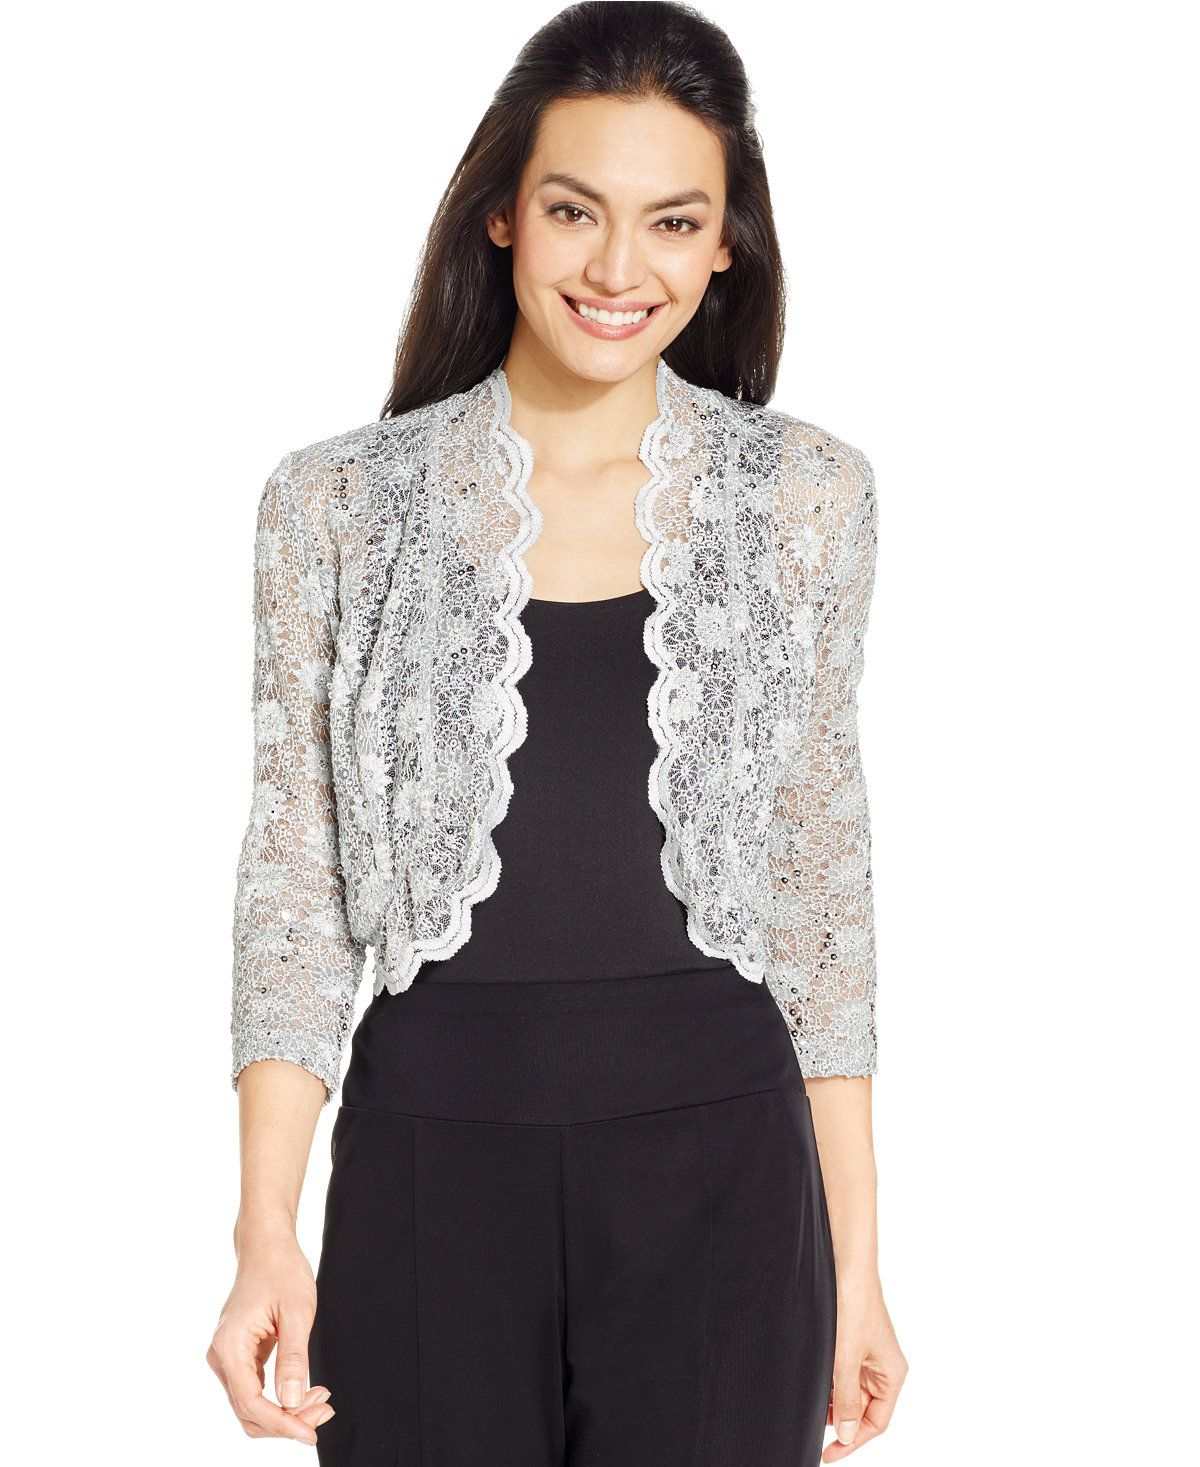 R&M Richards Scalloped Sequin Lace Bolero | Lace bolero, Boleros ...